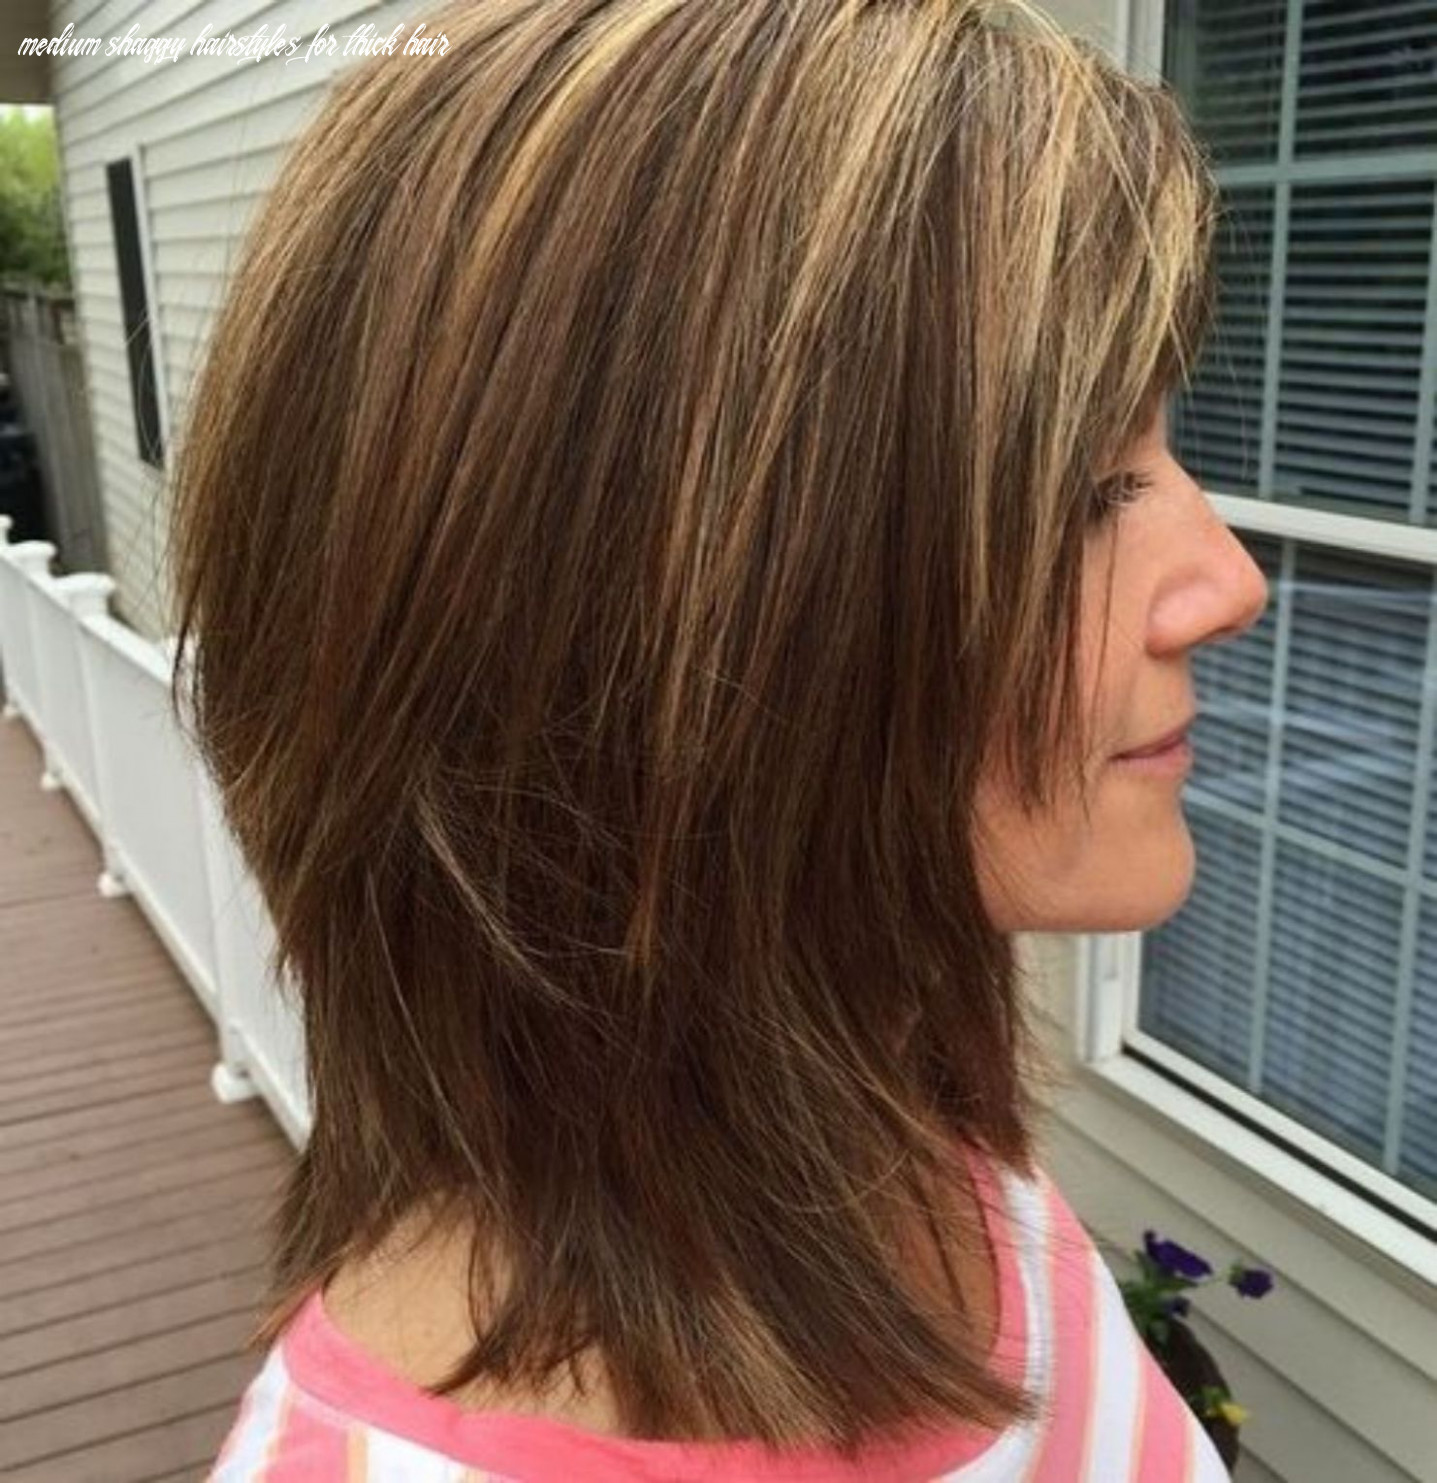 11 lovely long shag haircuts for effortless stylish looks   long